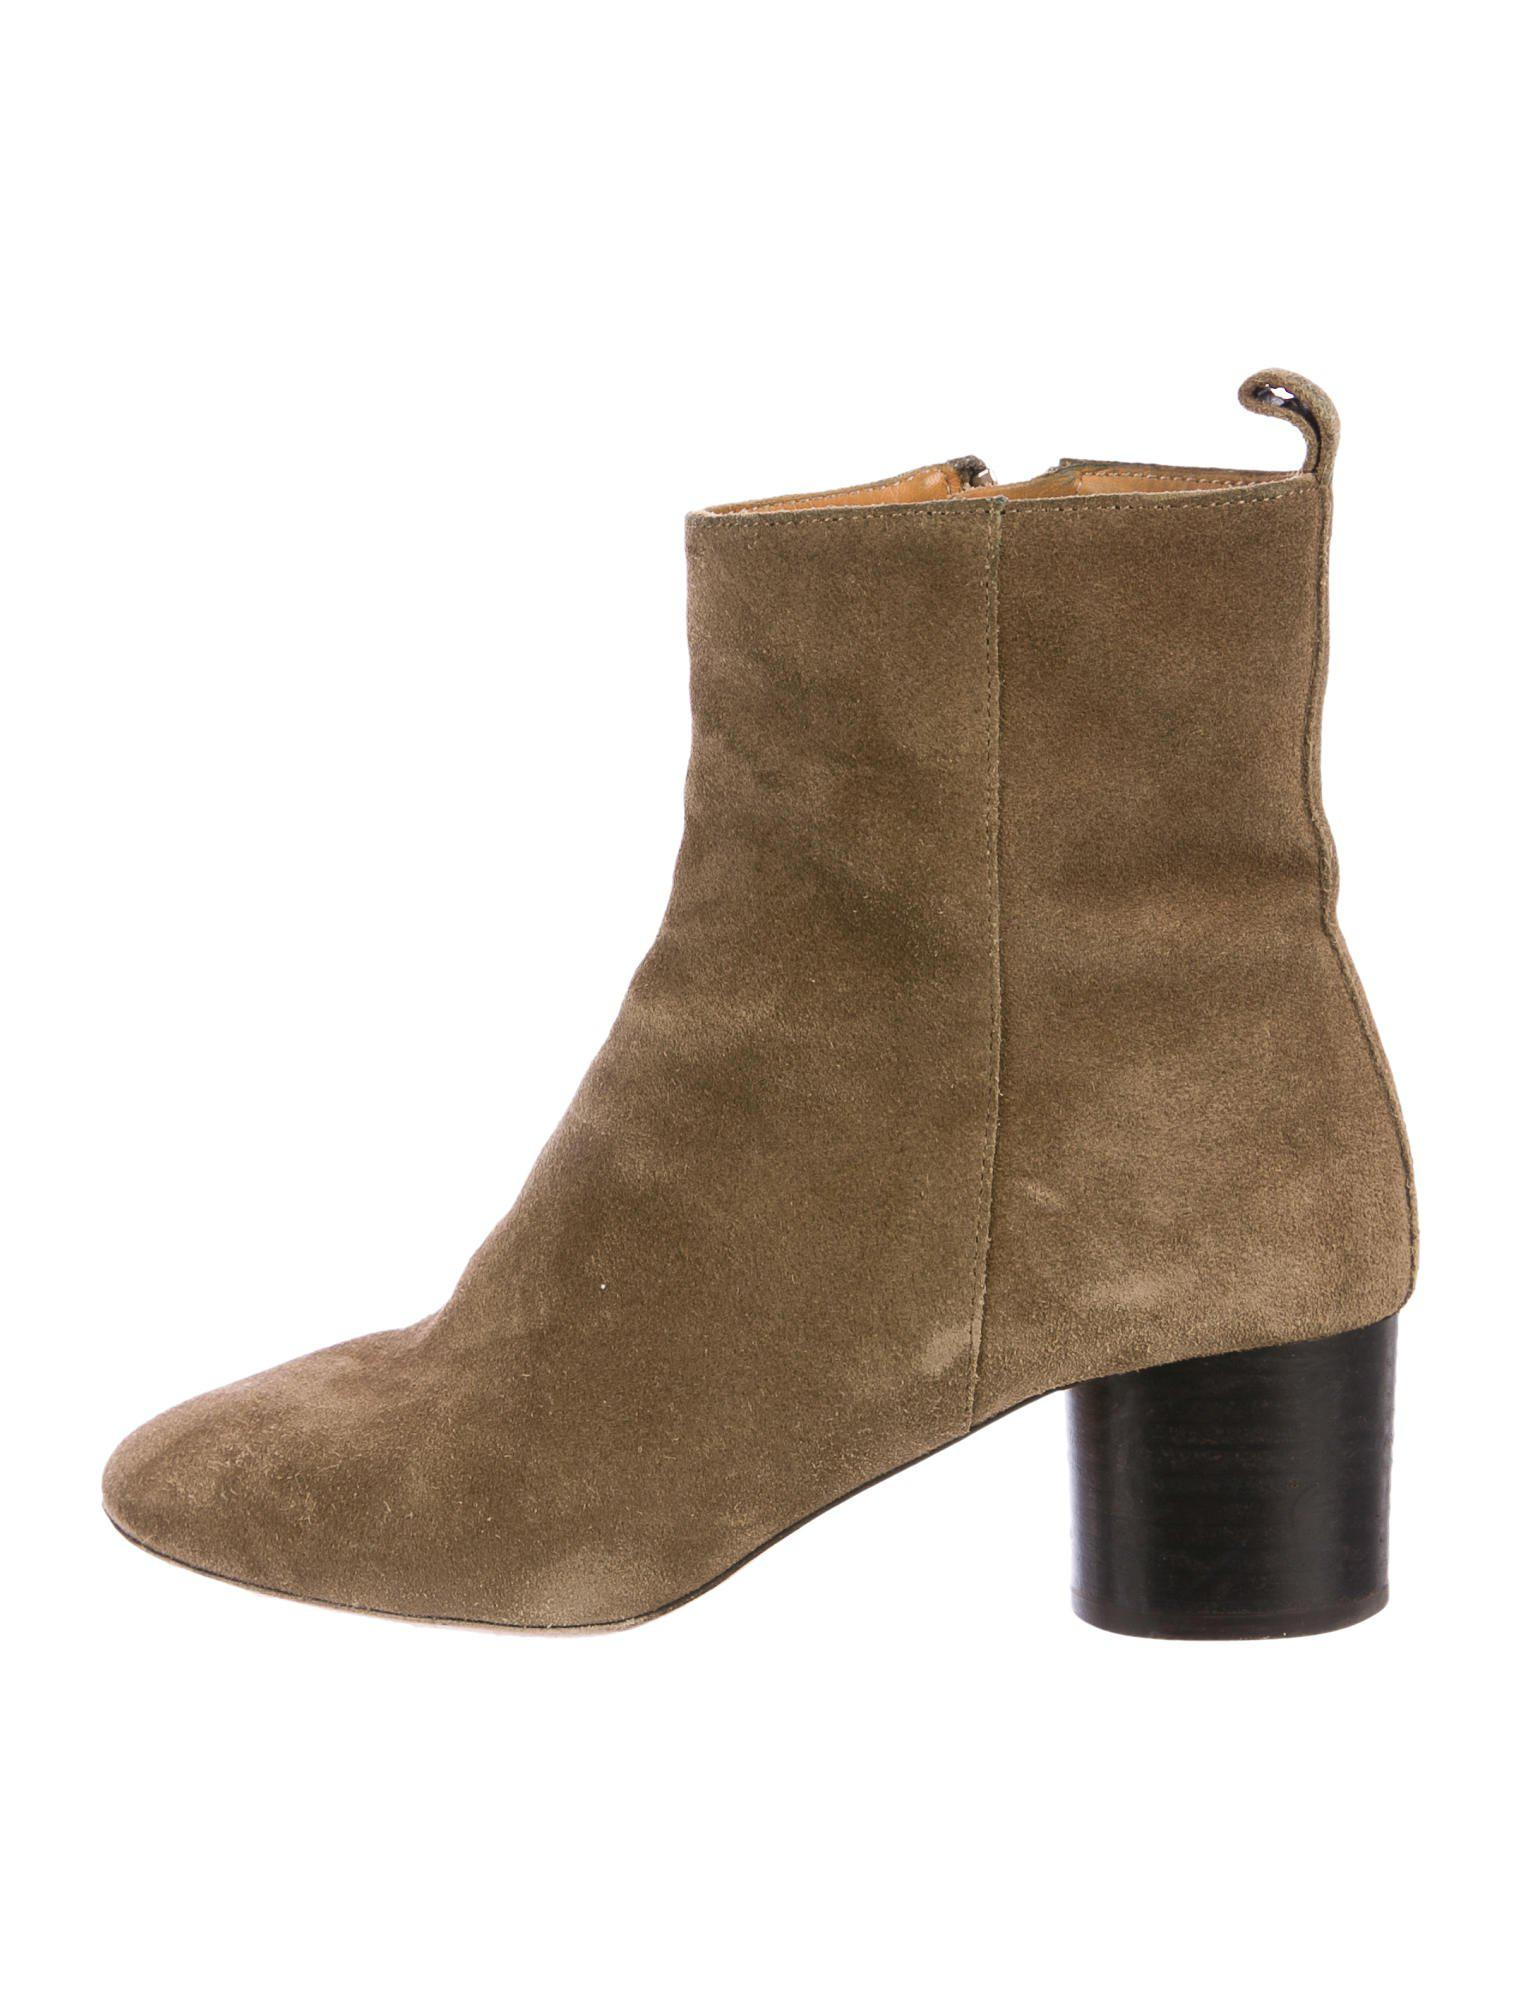 0ec611699f5 Lyst - Étoile Isabel Marant Suede Round-toe Ankle Boots Olive in Green